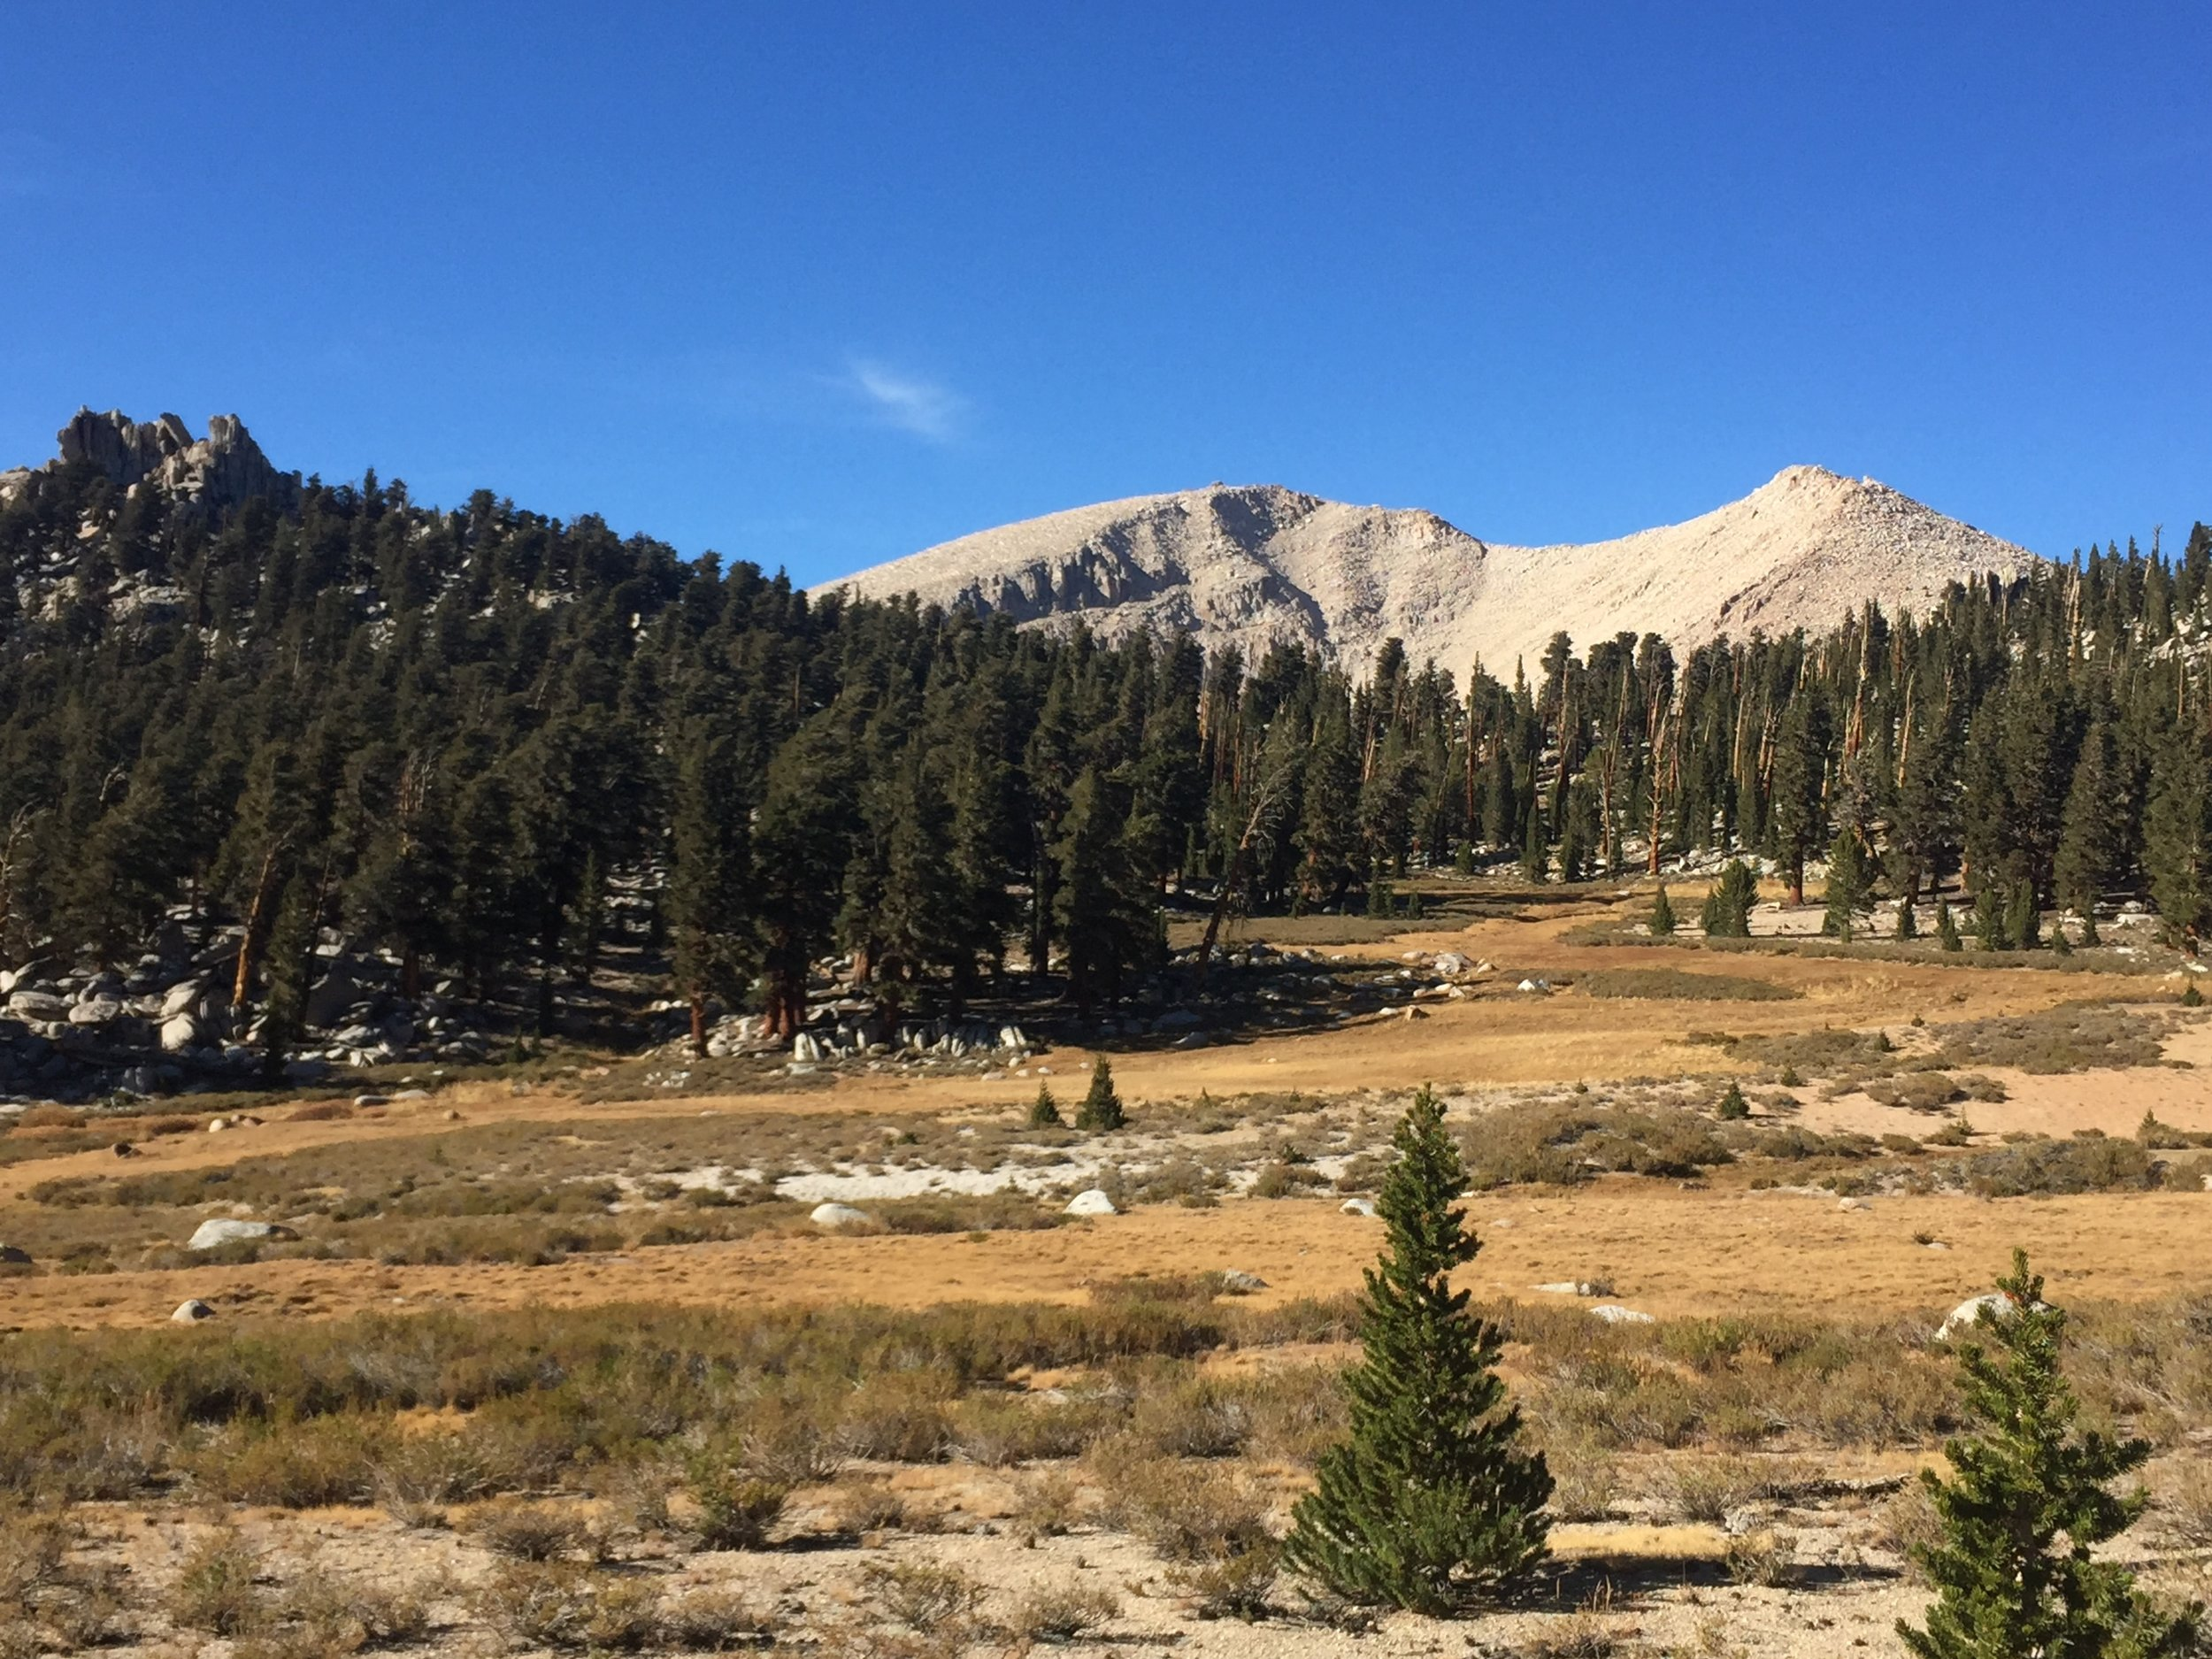 One of many high meadows as we head towards the southern reaches of the Sierra Nevada